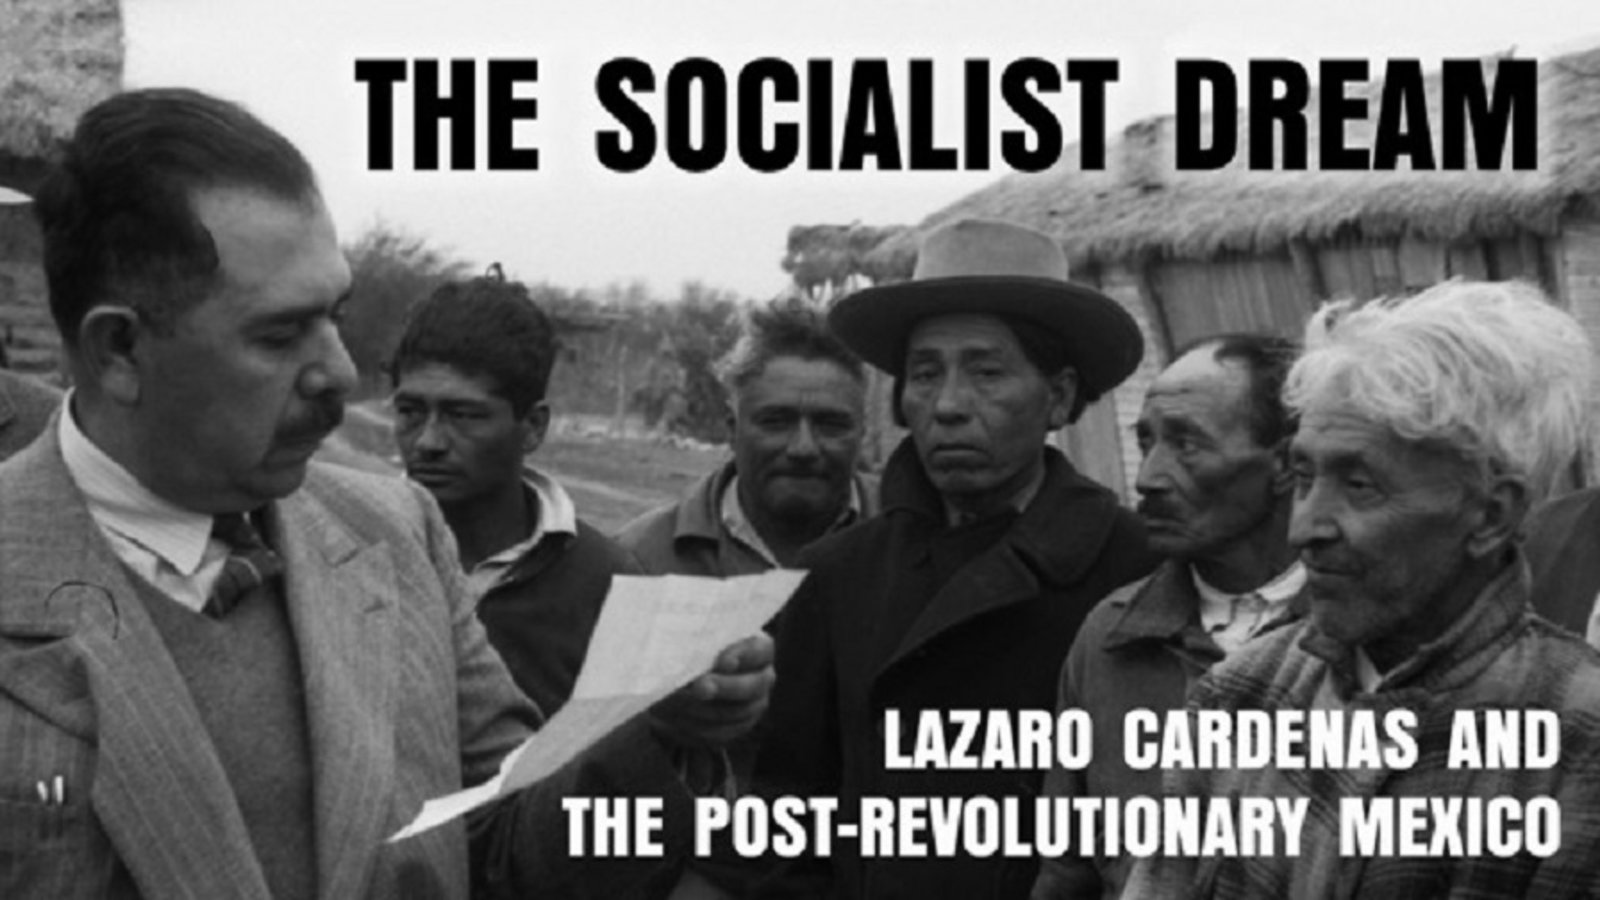 The Socialist Dream - President Lázaro Cárdenas and the Socialist Ideals his inspired in Mexico